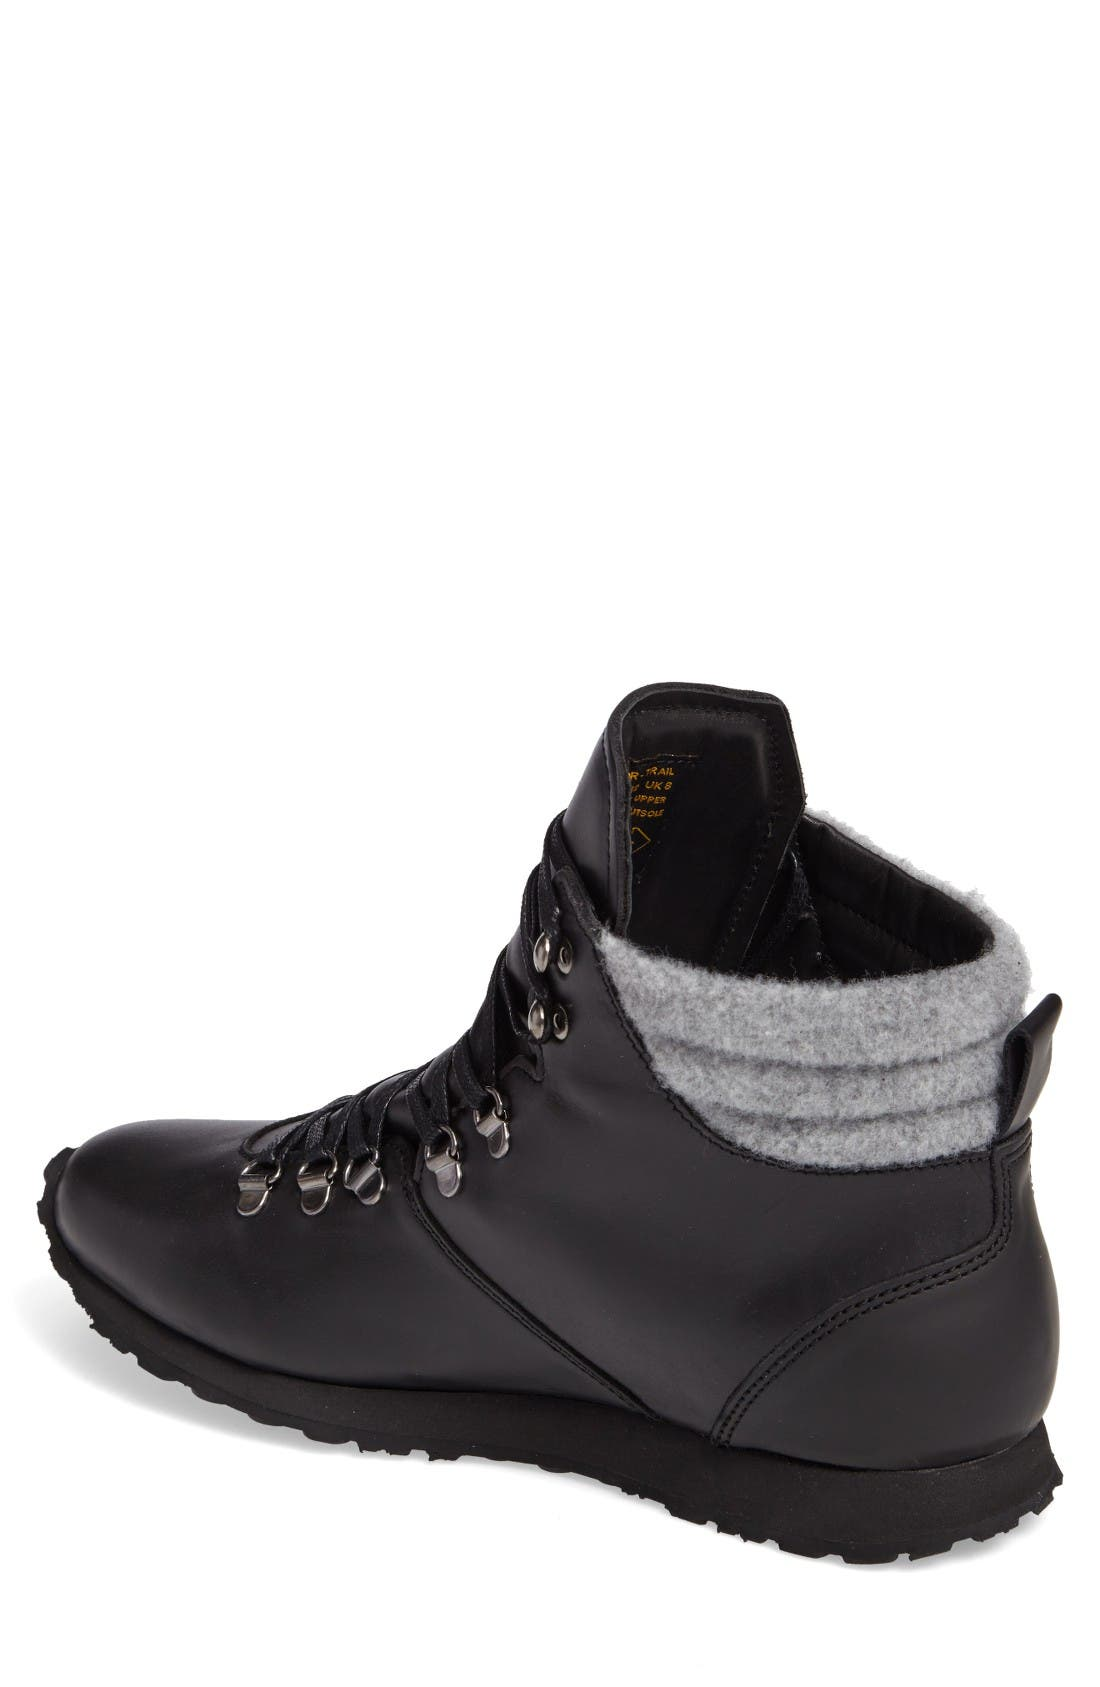 Alternate Image 2  - Hood Rubber Concord Mid Top Wool Cuffed Waterproof Boot (Men)